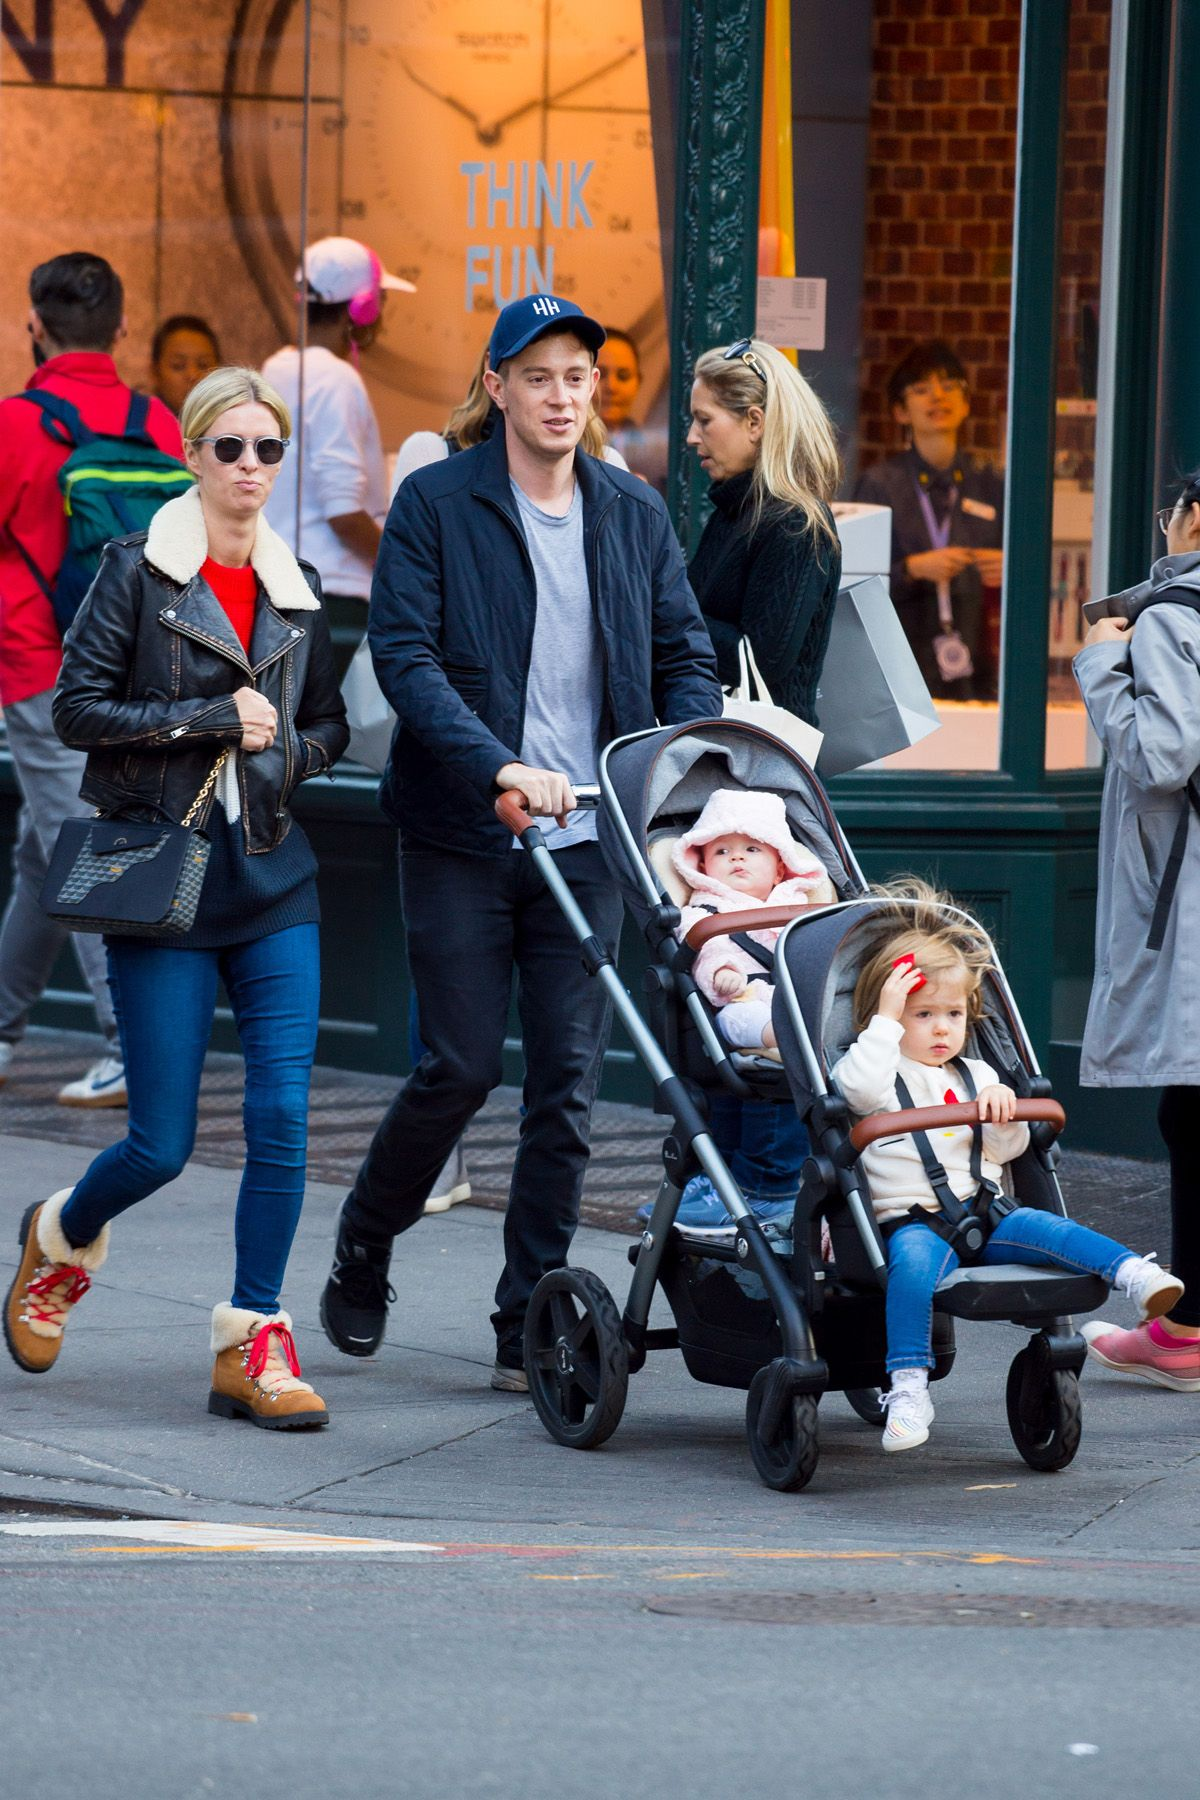 EXCLUSIVE: Nicky Hilton And James Rothschild Are Seen Out For A Stroll With Their Children Lily And Teddy In New York City